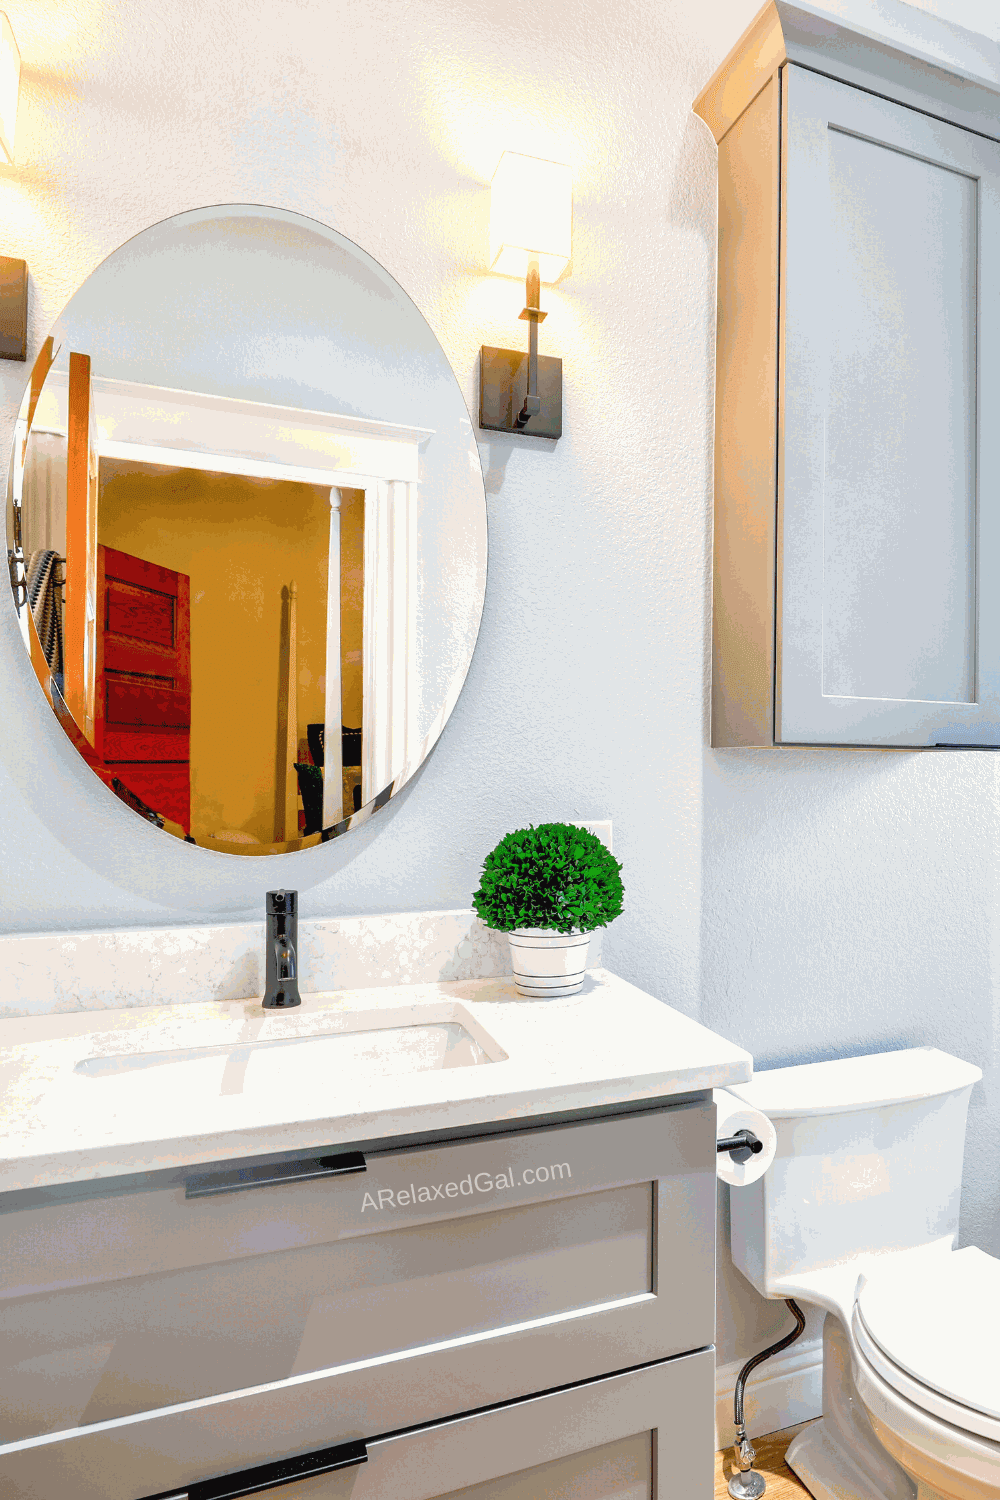 Easy Bathroom Updates On A Budget | A Relaxed Gal